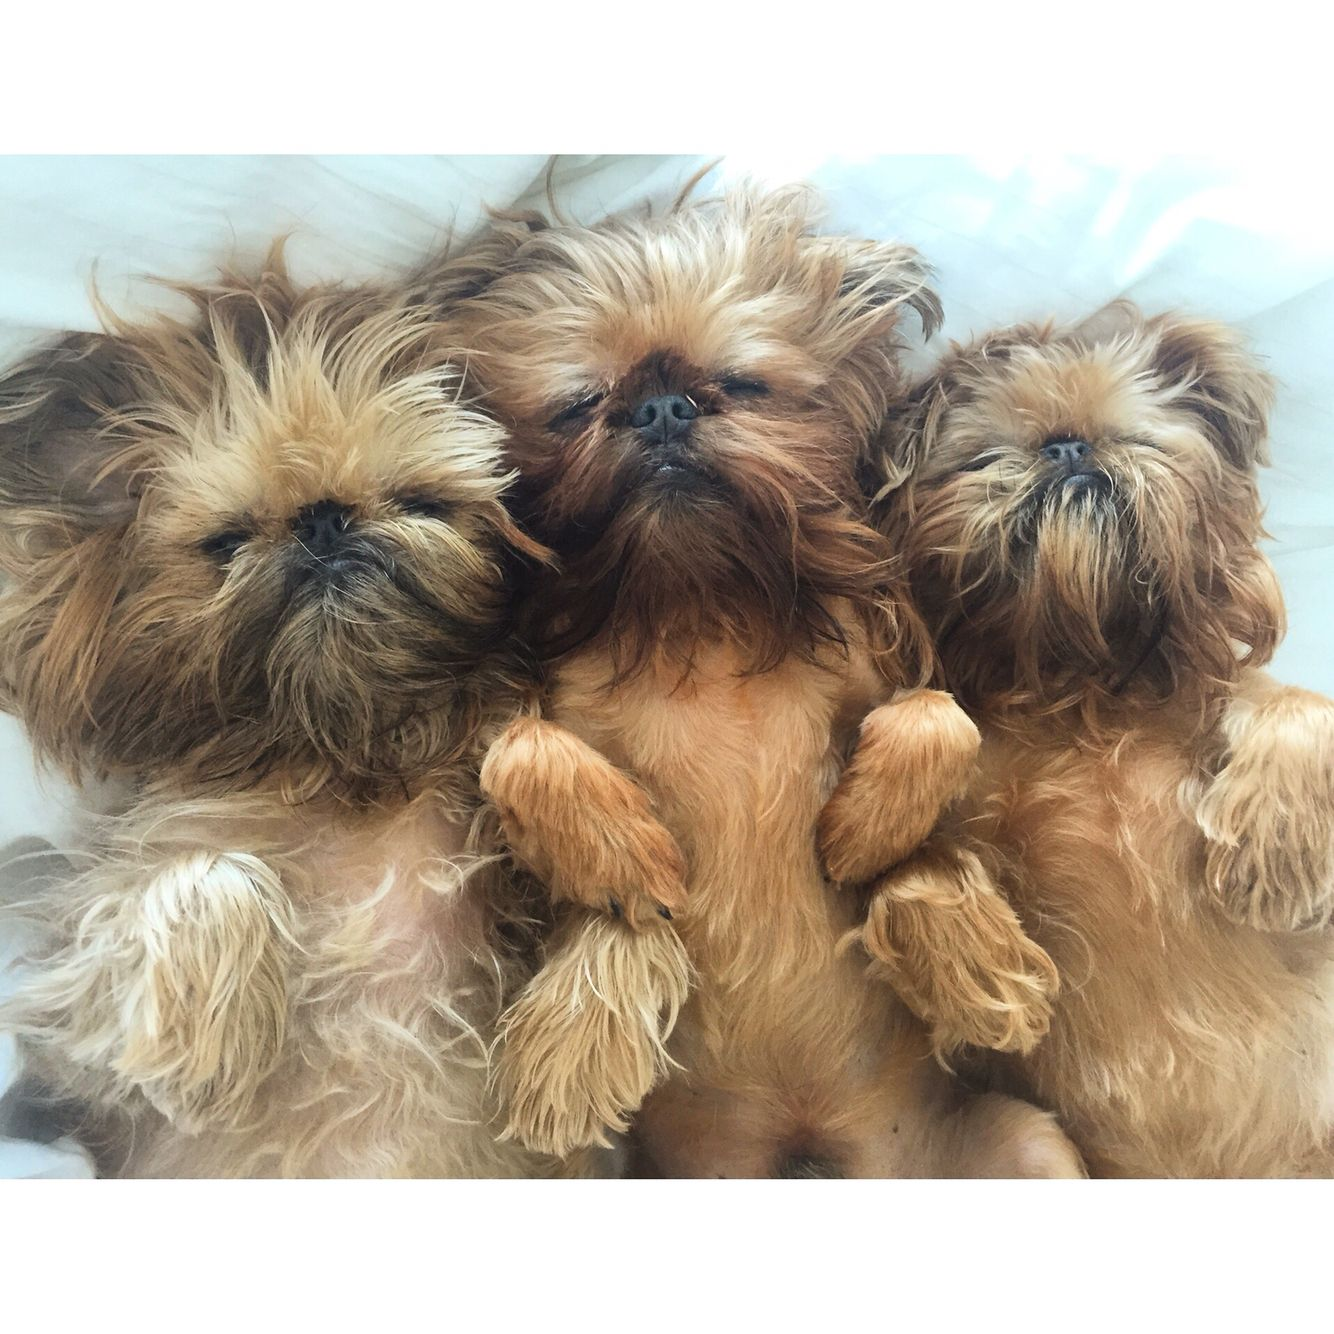 Image result for 犬 Brussels Griffon  多くの子犬